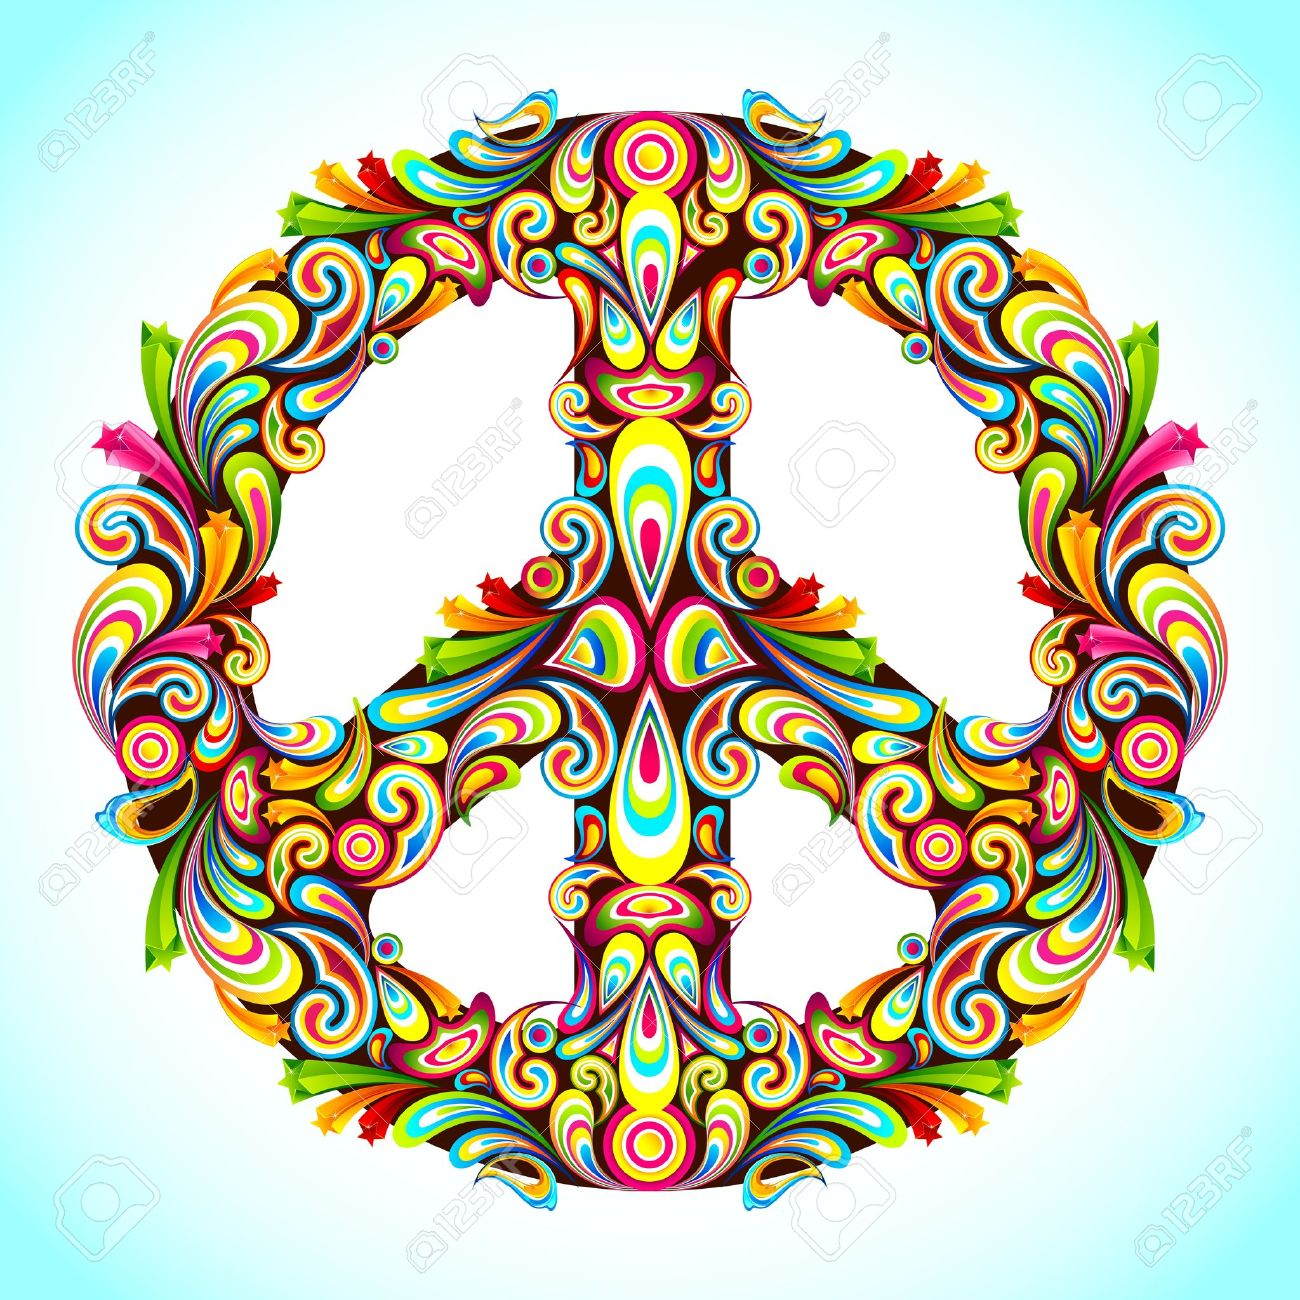 illustration of peace sign made of colorful swirl Stock Vector - 11949682